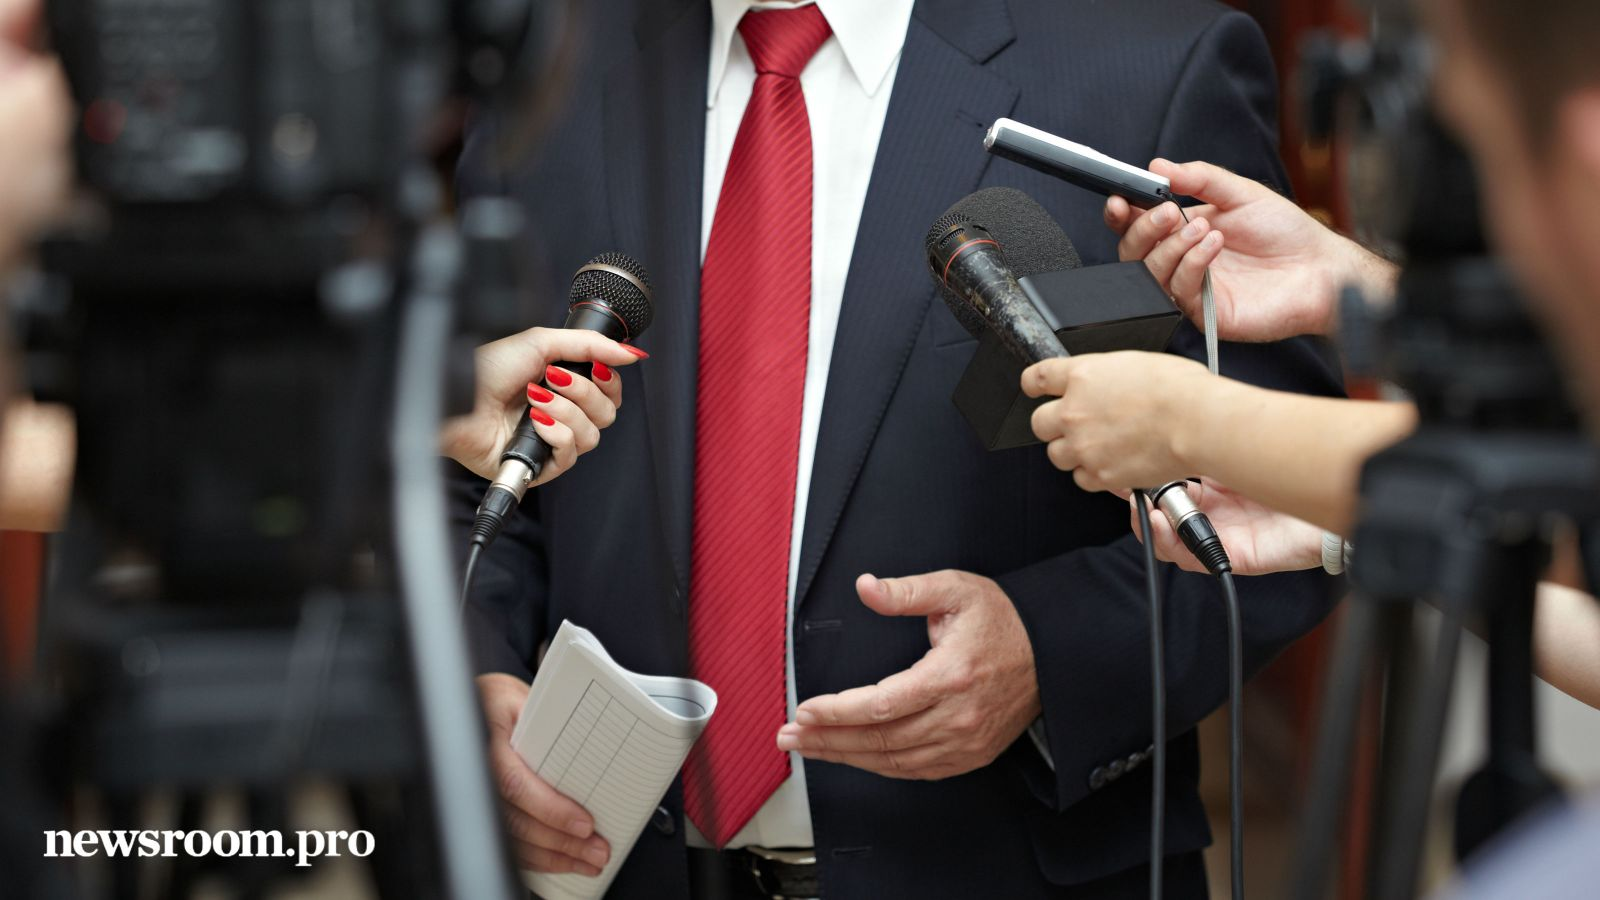 A man with a red tie is interviewed by various media.